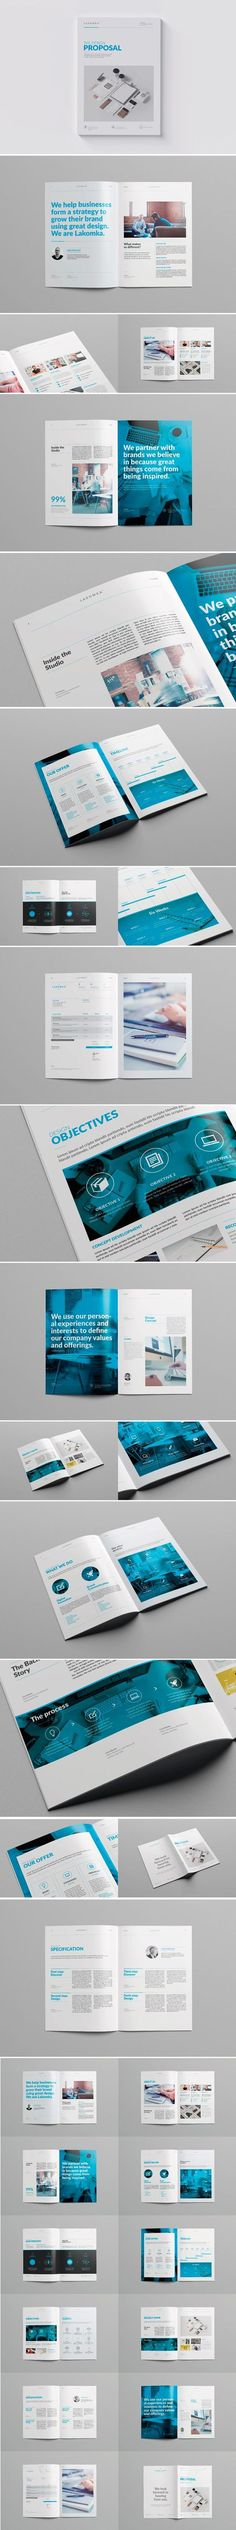 24 Pages Business Project Proposal Template Indesign Indd